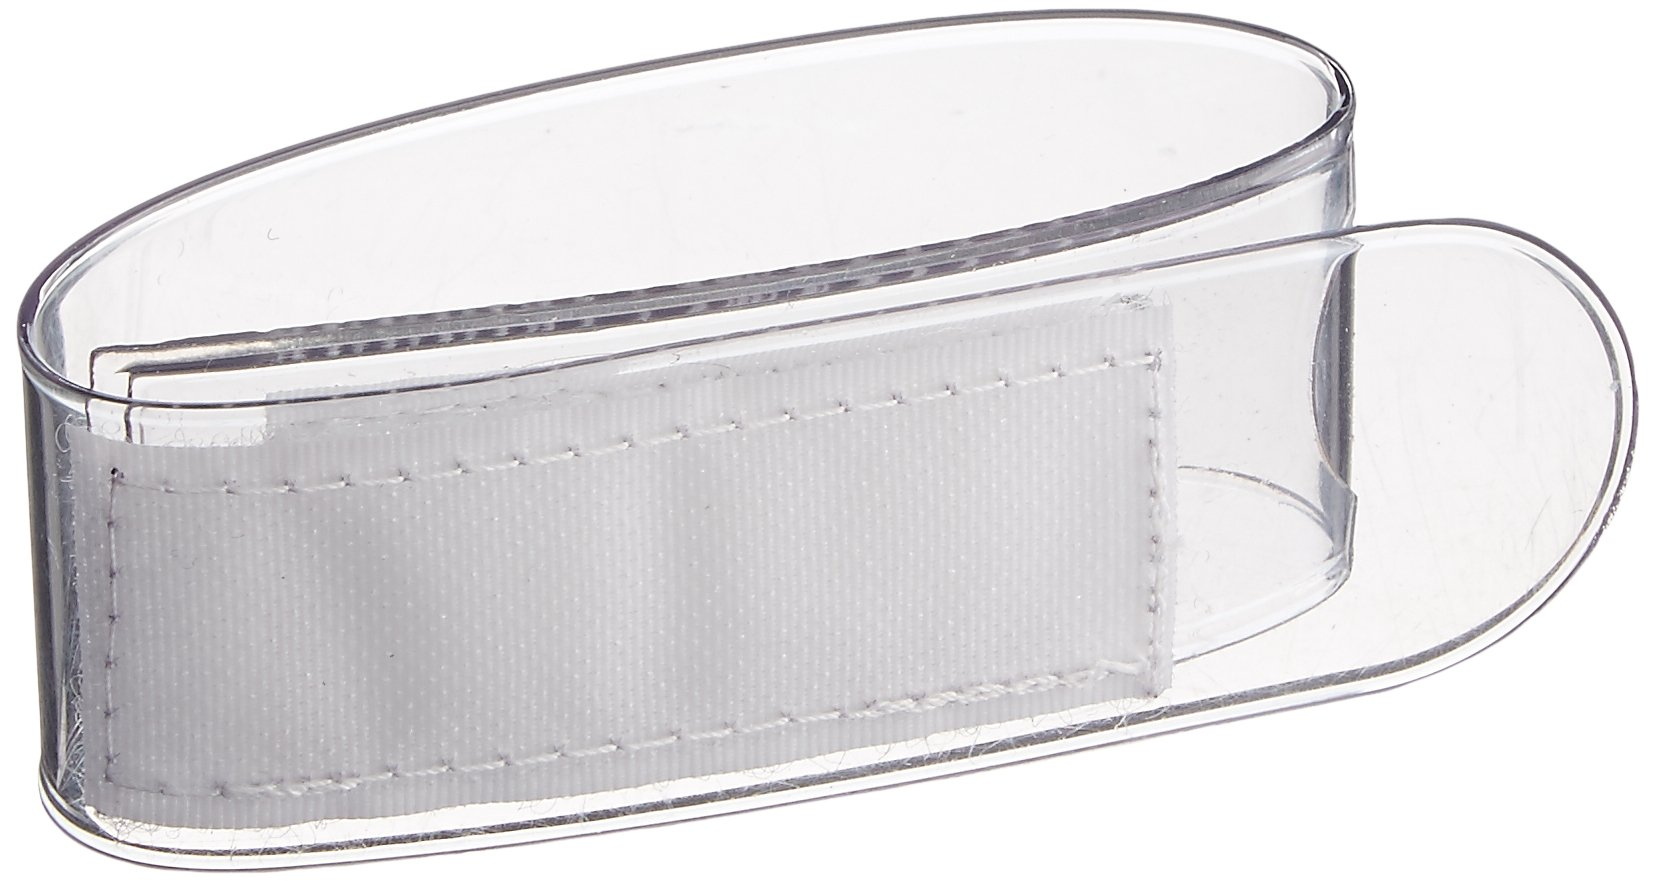 Sammons Preston Plastic Utensil Holder Cuff, Independent Assistive Eating Strap Holds Cutlery for Limited Grasp and Mobility, Safe and Convenient Eating Aid for Elderly, Hand Tremors, Arthritis